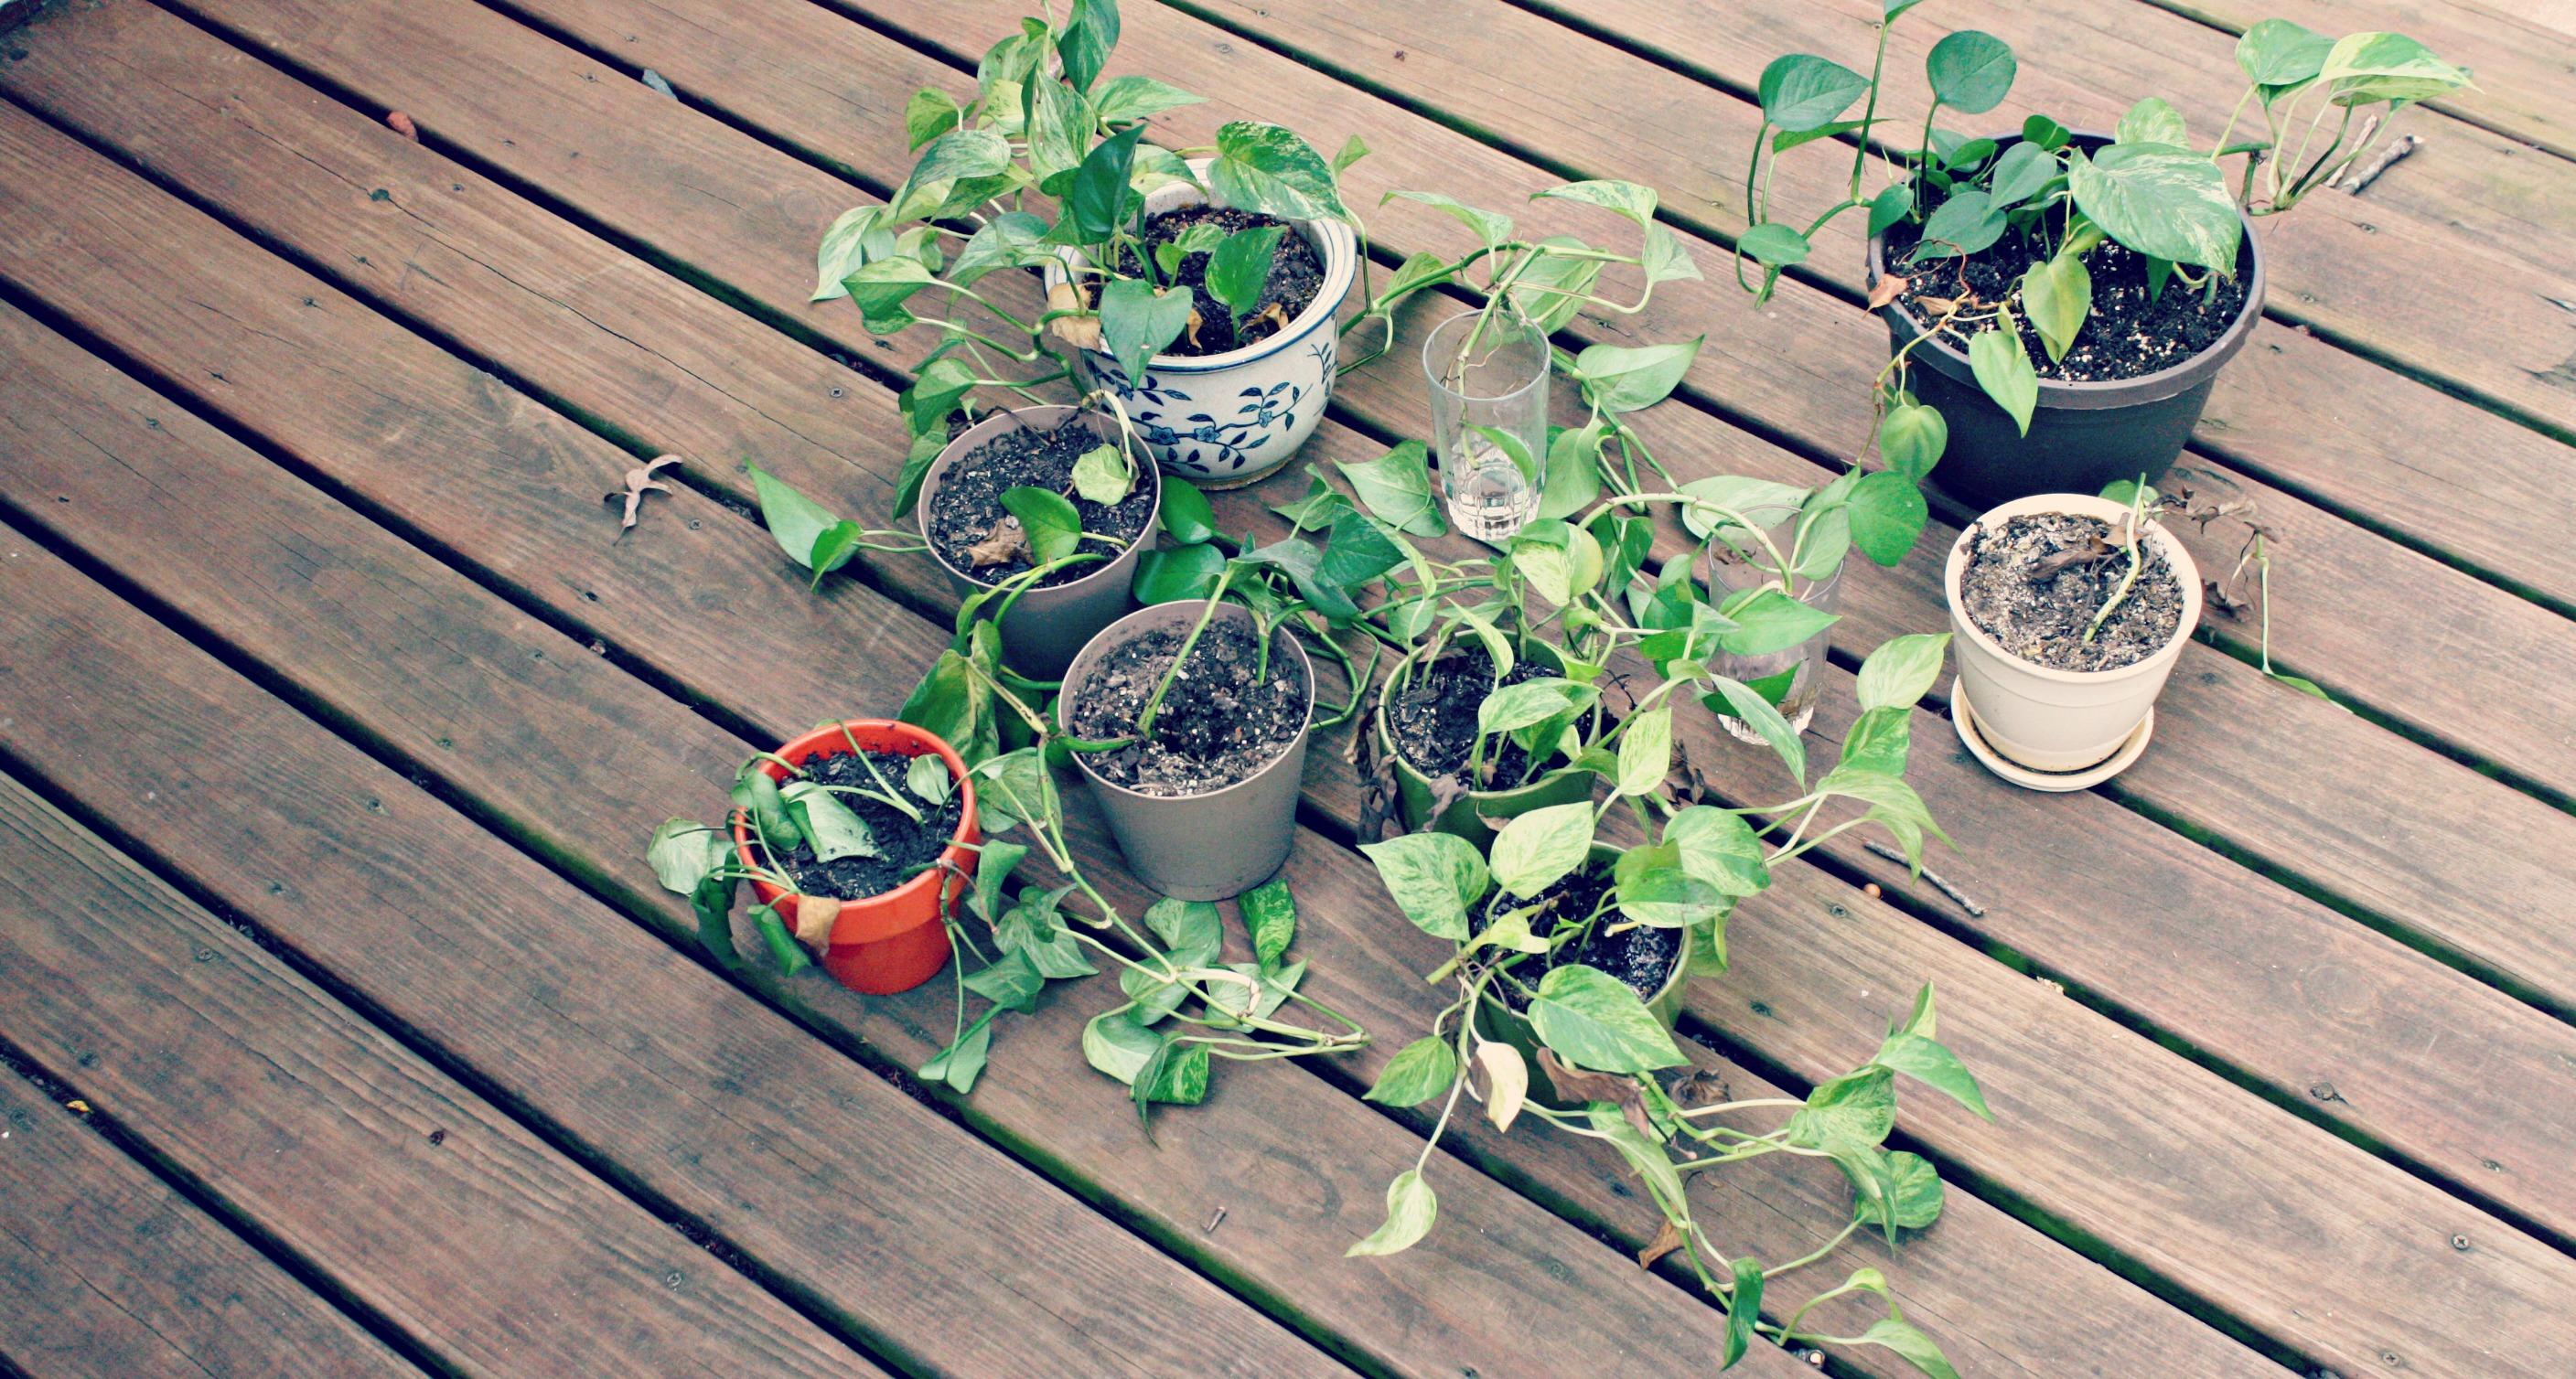 how to take care of a plant that is dying